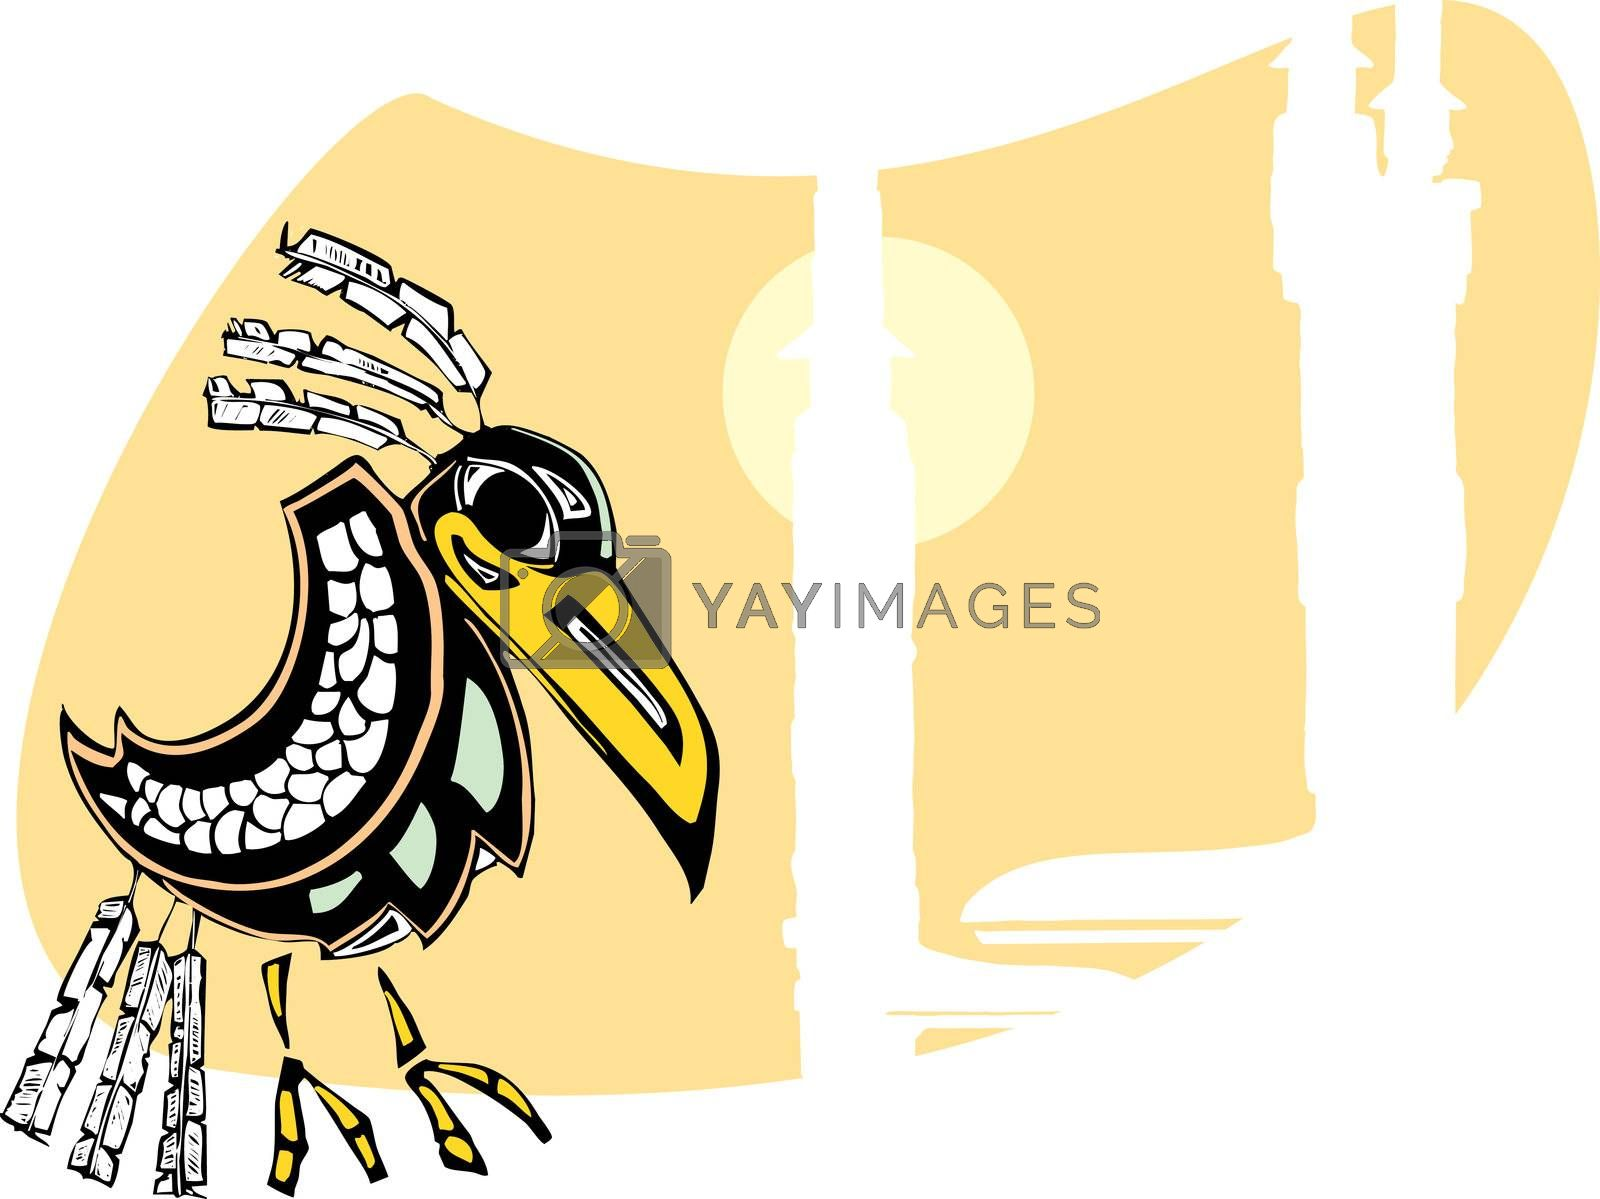 Raven sits by totem poles rendered in Northwest Coast Native Style.